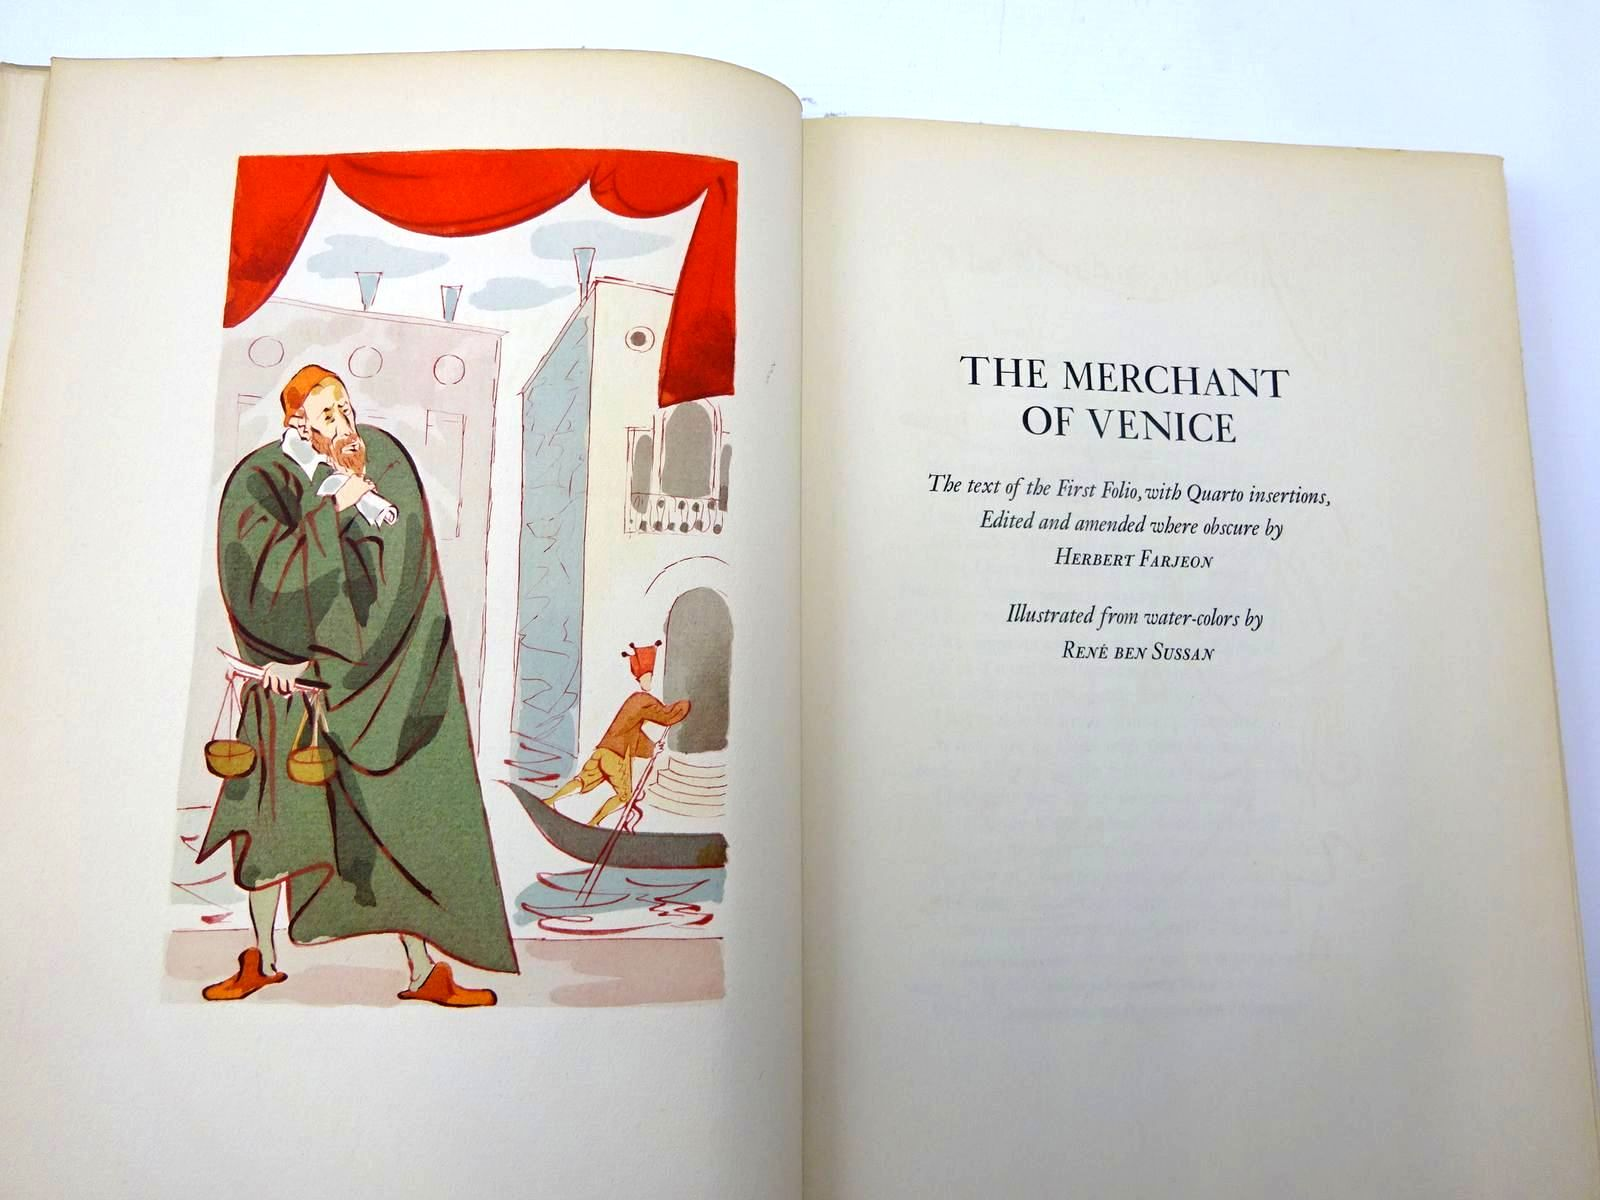 Photo of THE MERCHANT OF VENICE written by Shakespeare, William Farjeon, Herbert illustrated by Sussan, Rene Ben published by The Limited Editions Club (STOCK CODE: 2130462)  for sale by Stella & Rose's Books